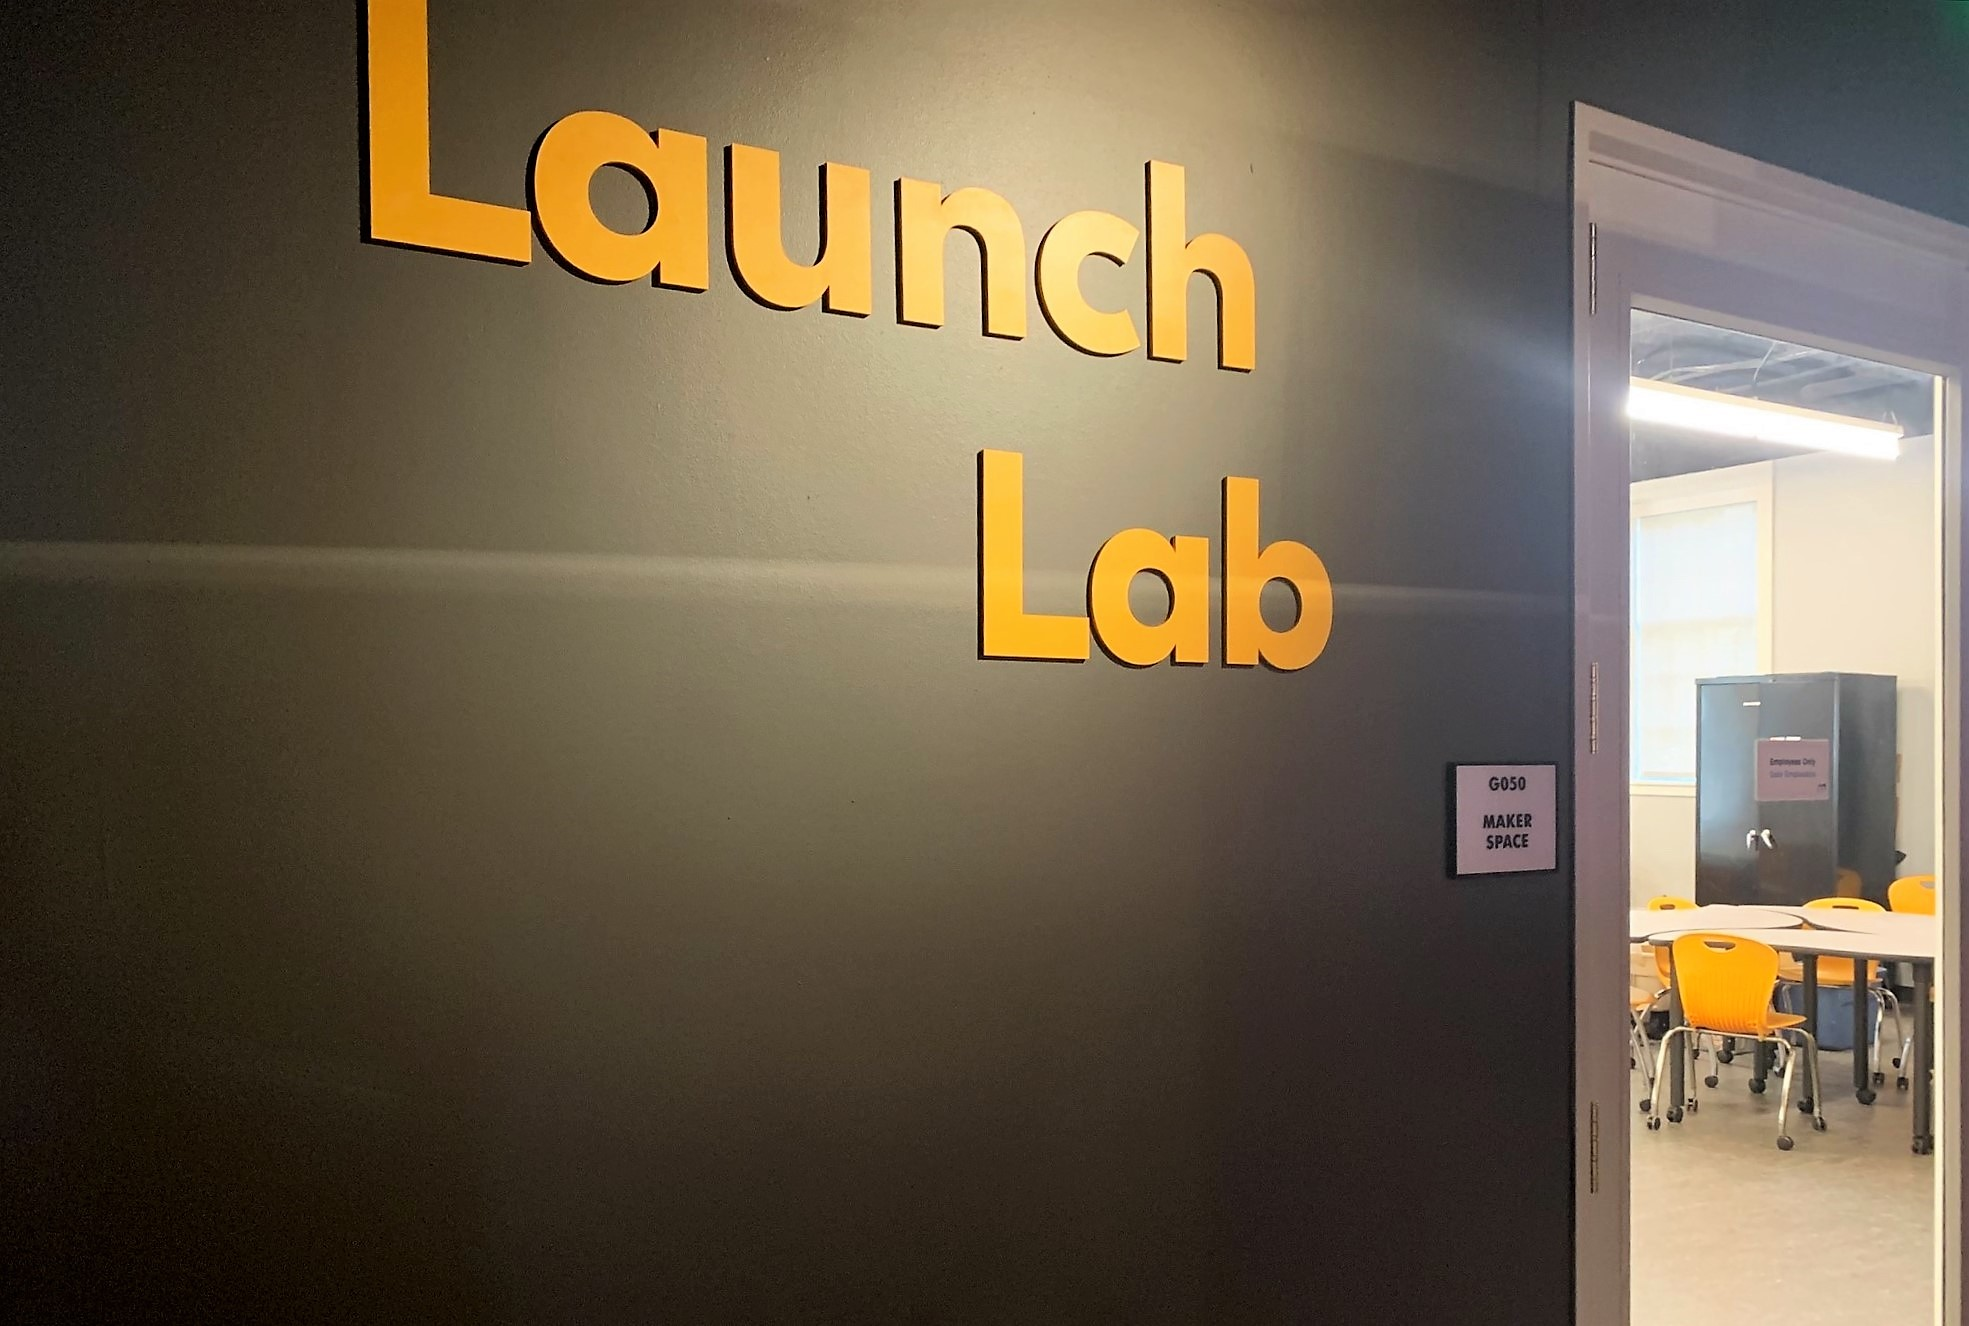 Launch lab at Morehead